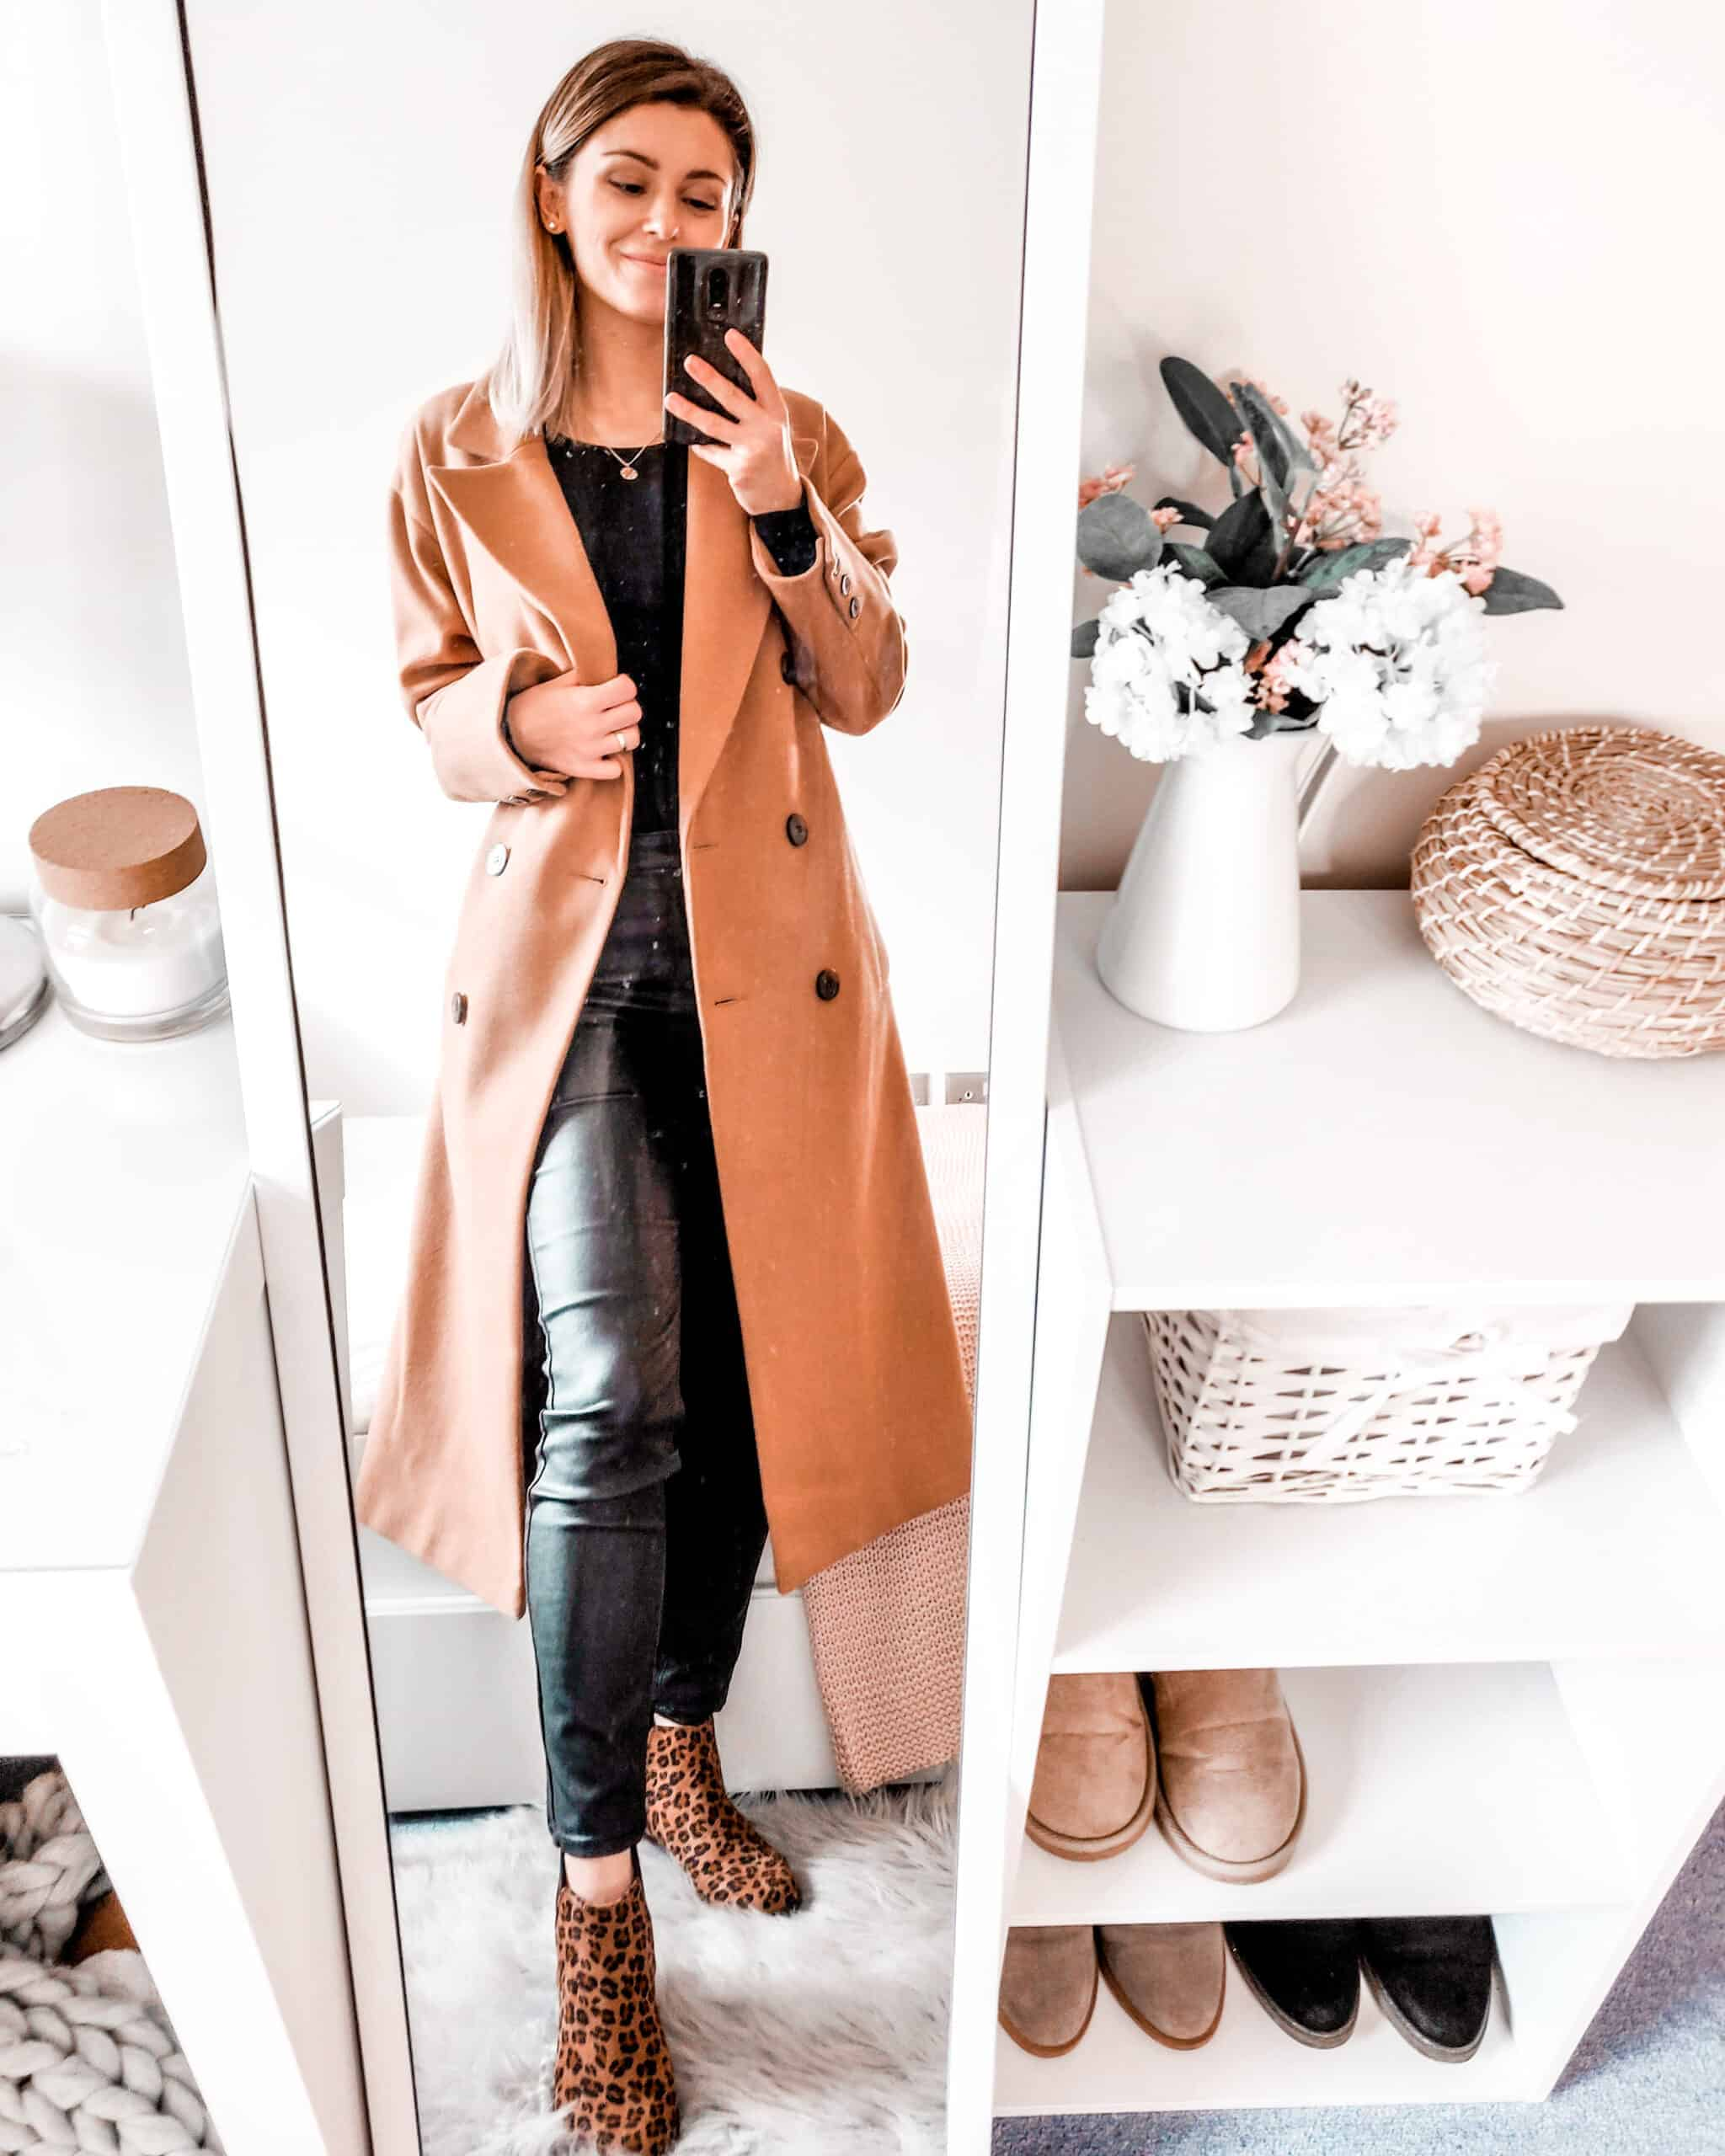 camel coat and black outfit for fall winter fashion primark